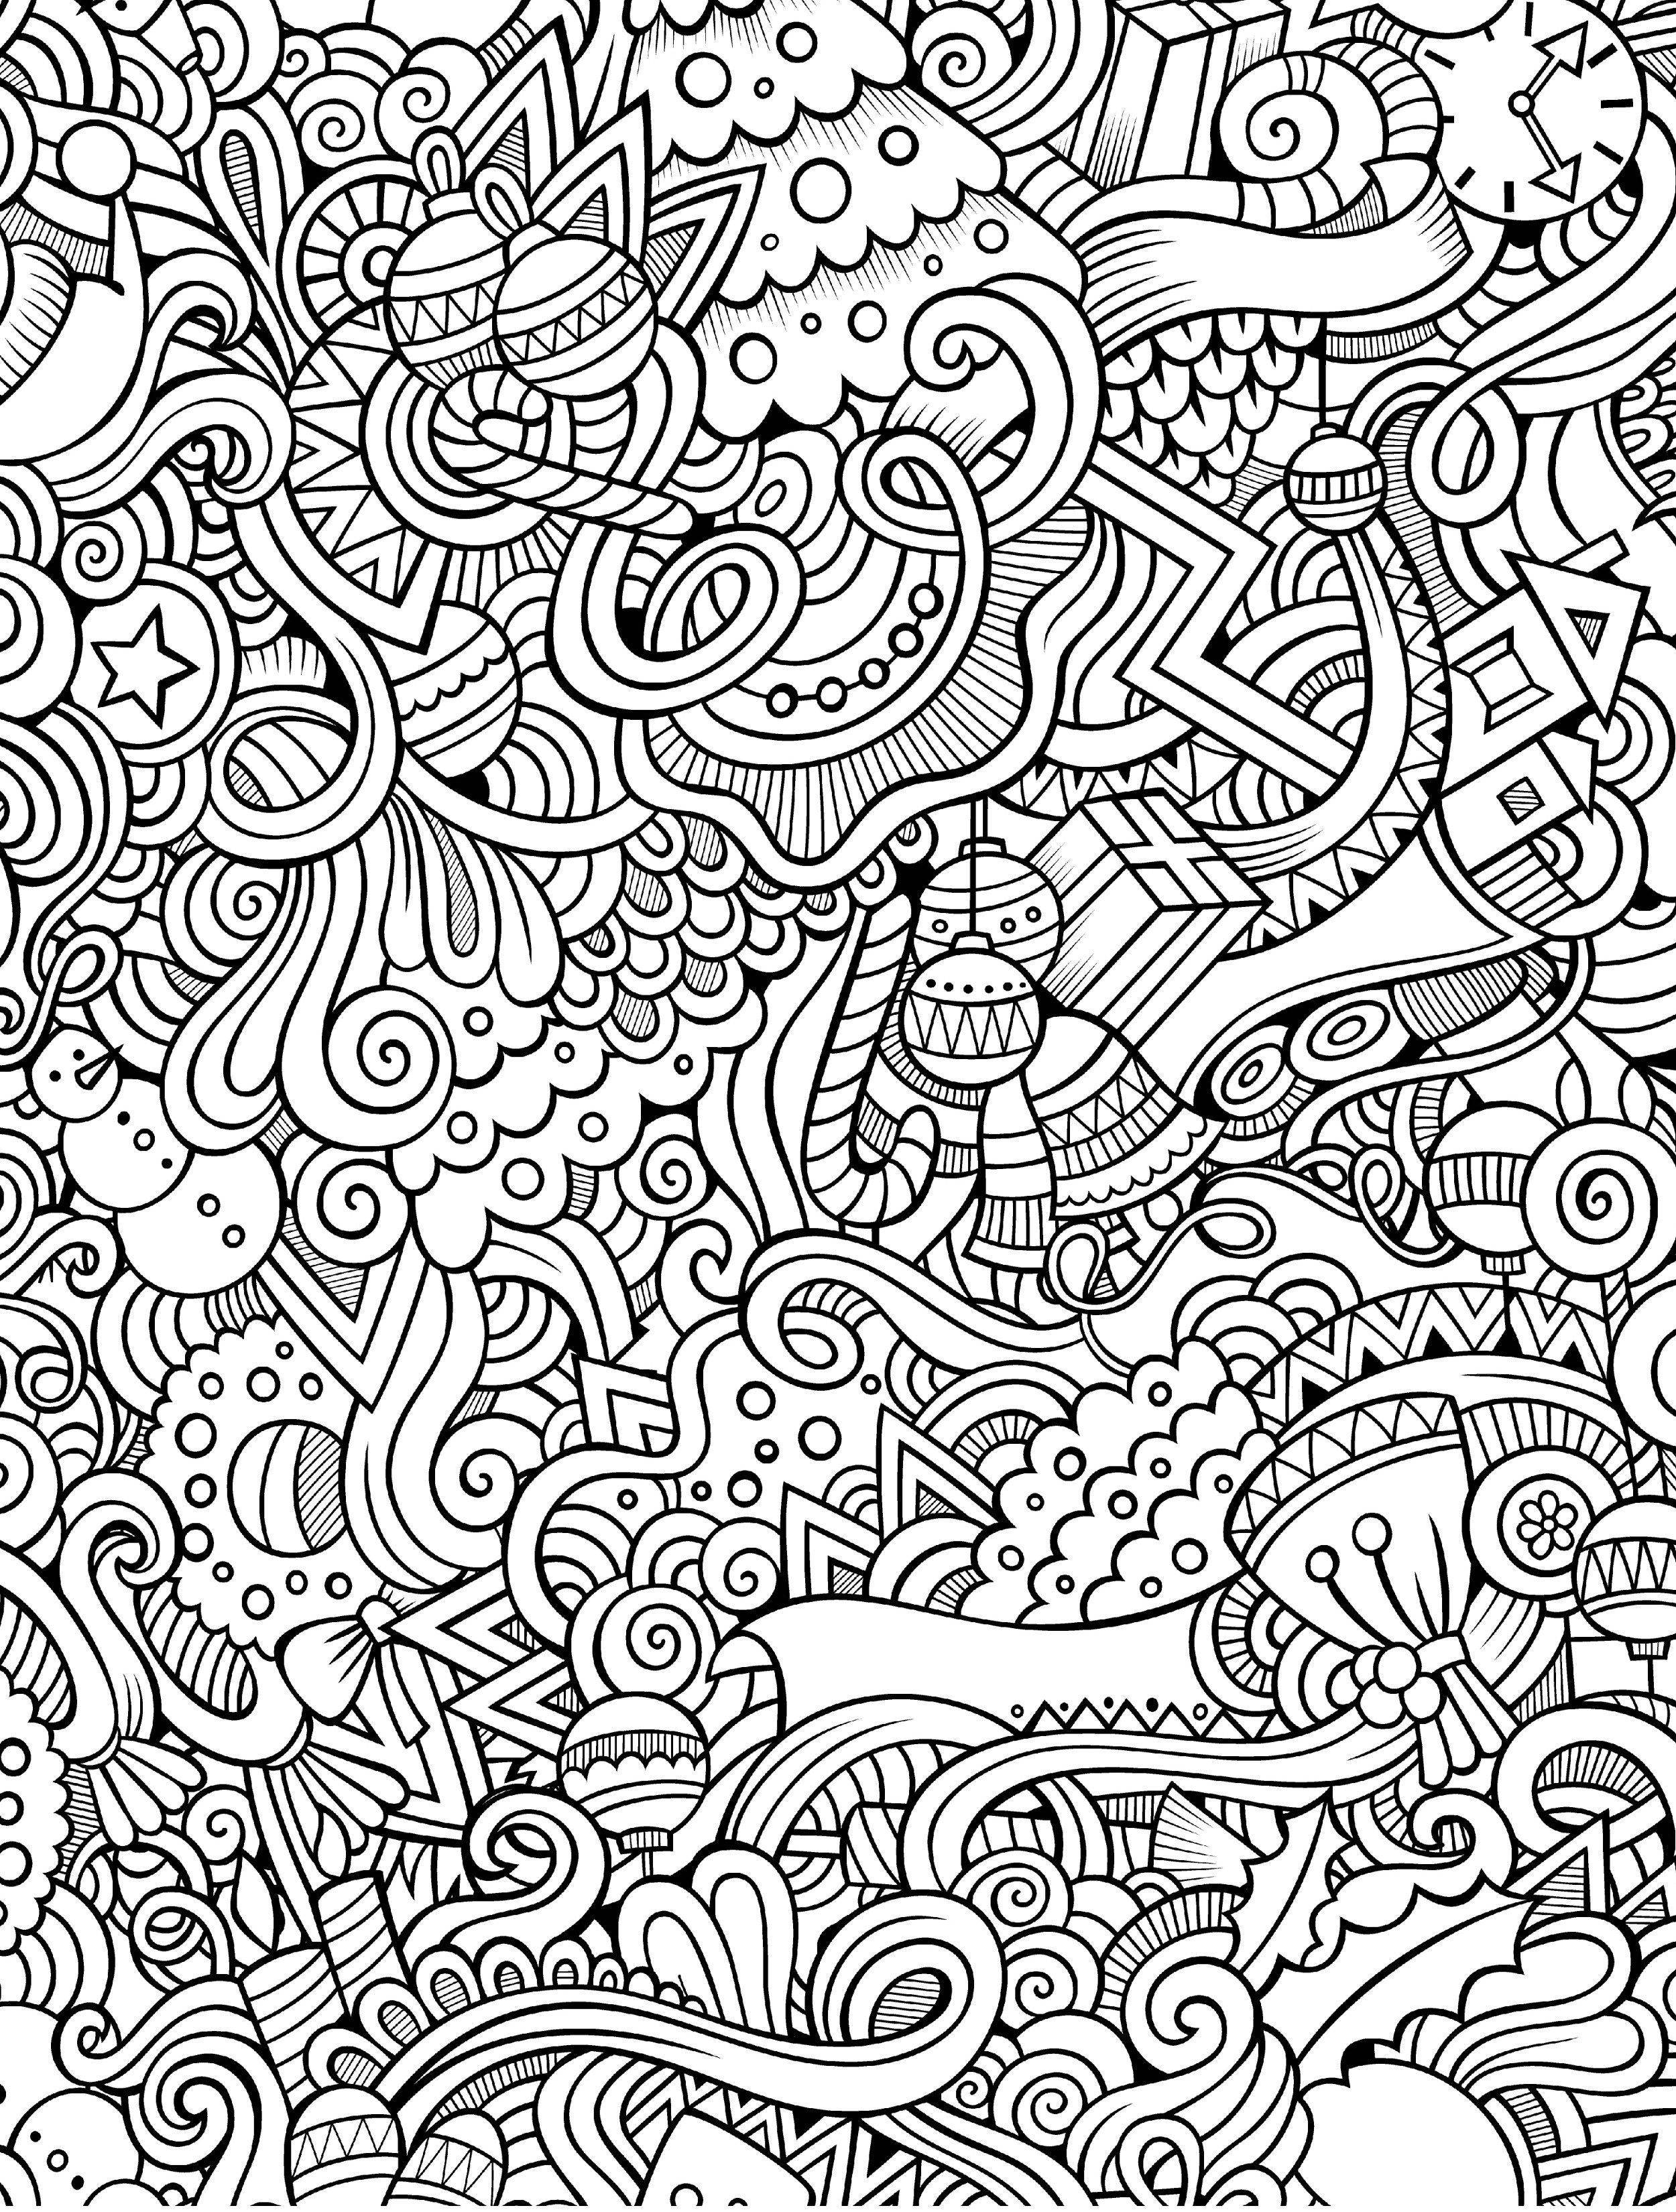 Easy Christmas Coloring Pages For Adults With Free Download Adult Small